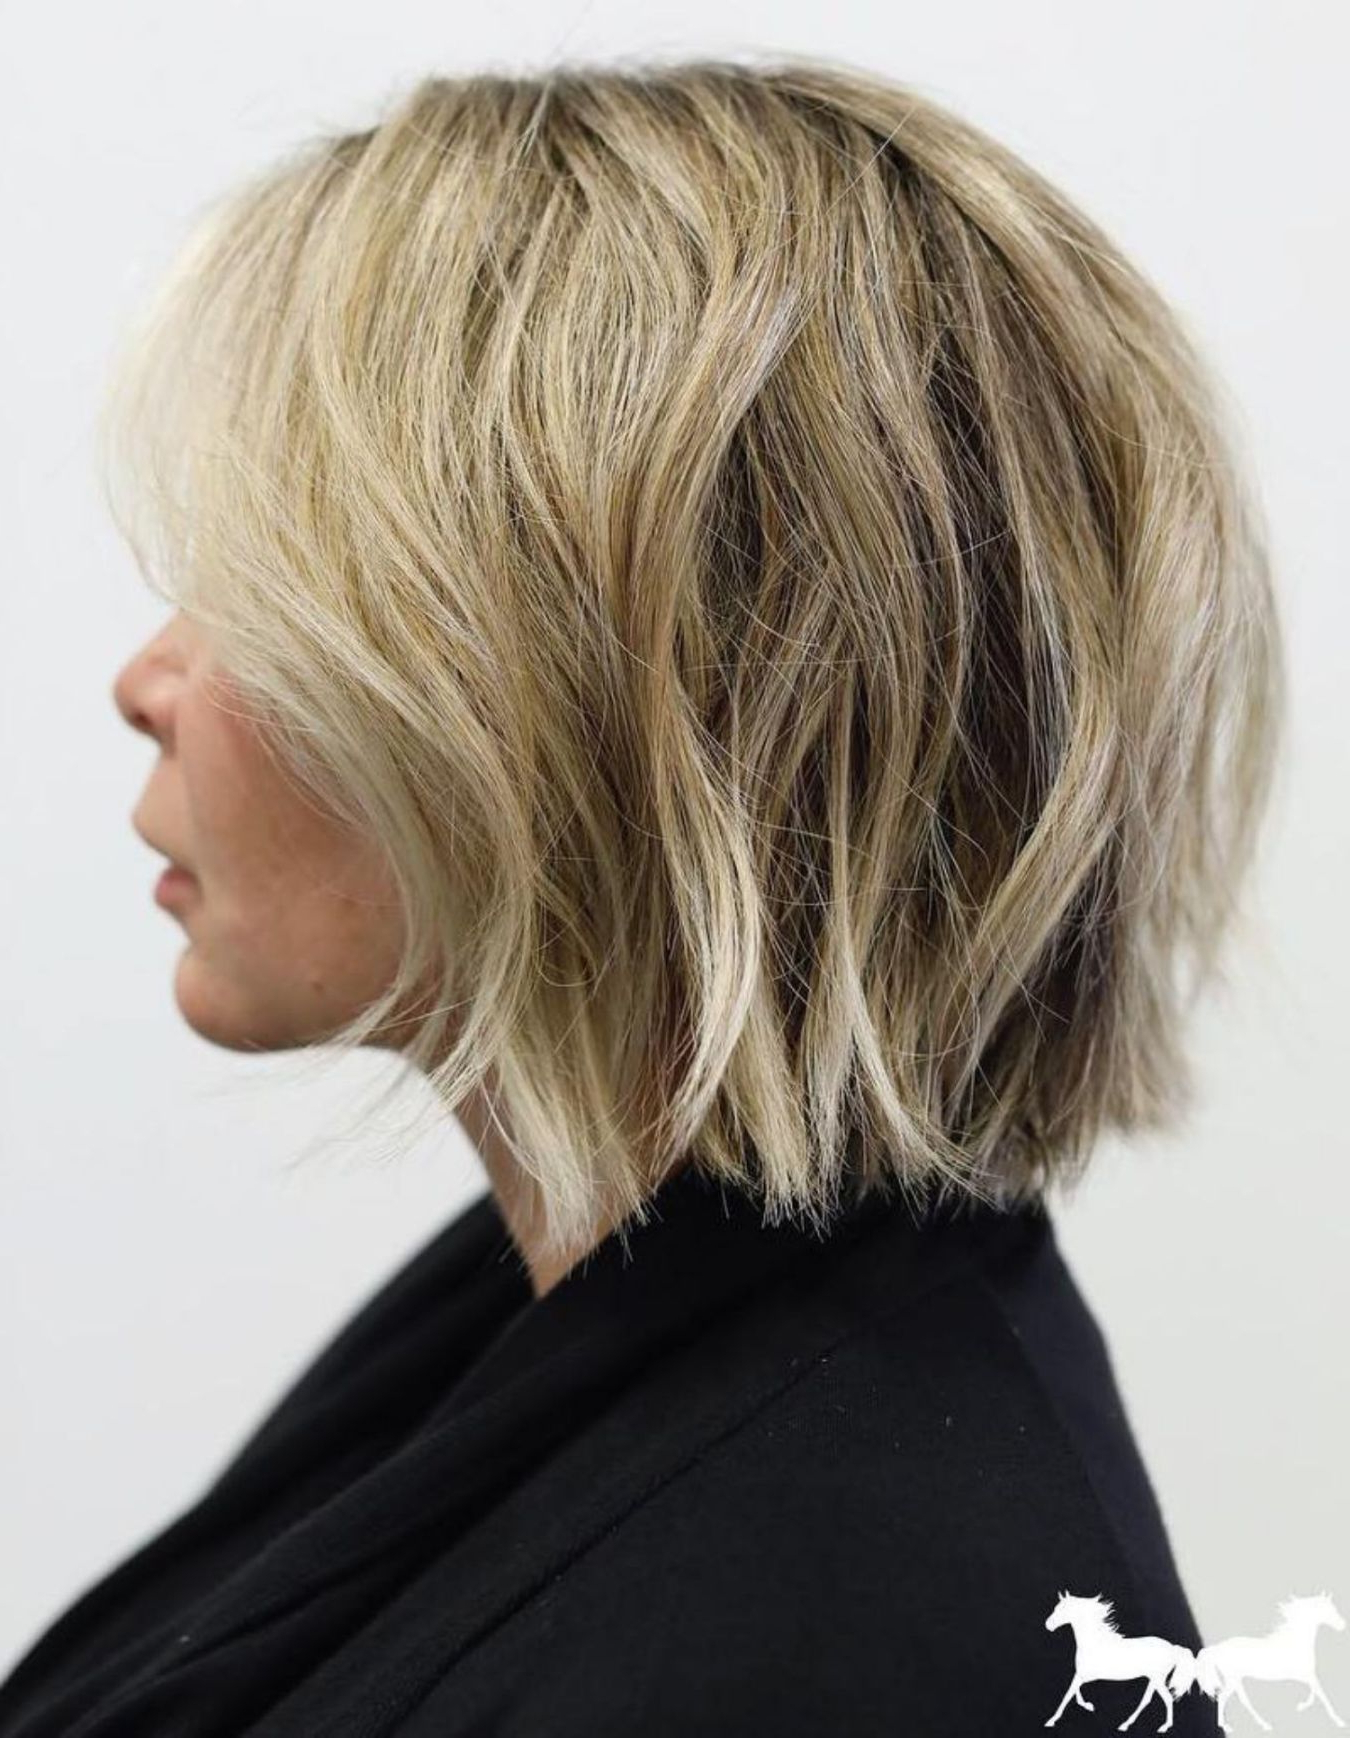 70 Fabulous Choppy Bob Hairstyles In 2018 | Hair | Pinterest Inside Tousled Razored Bob Hairstyles (Gallery 4 of 20)